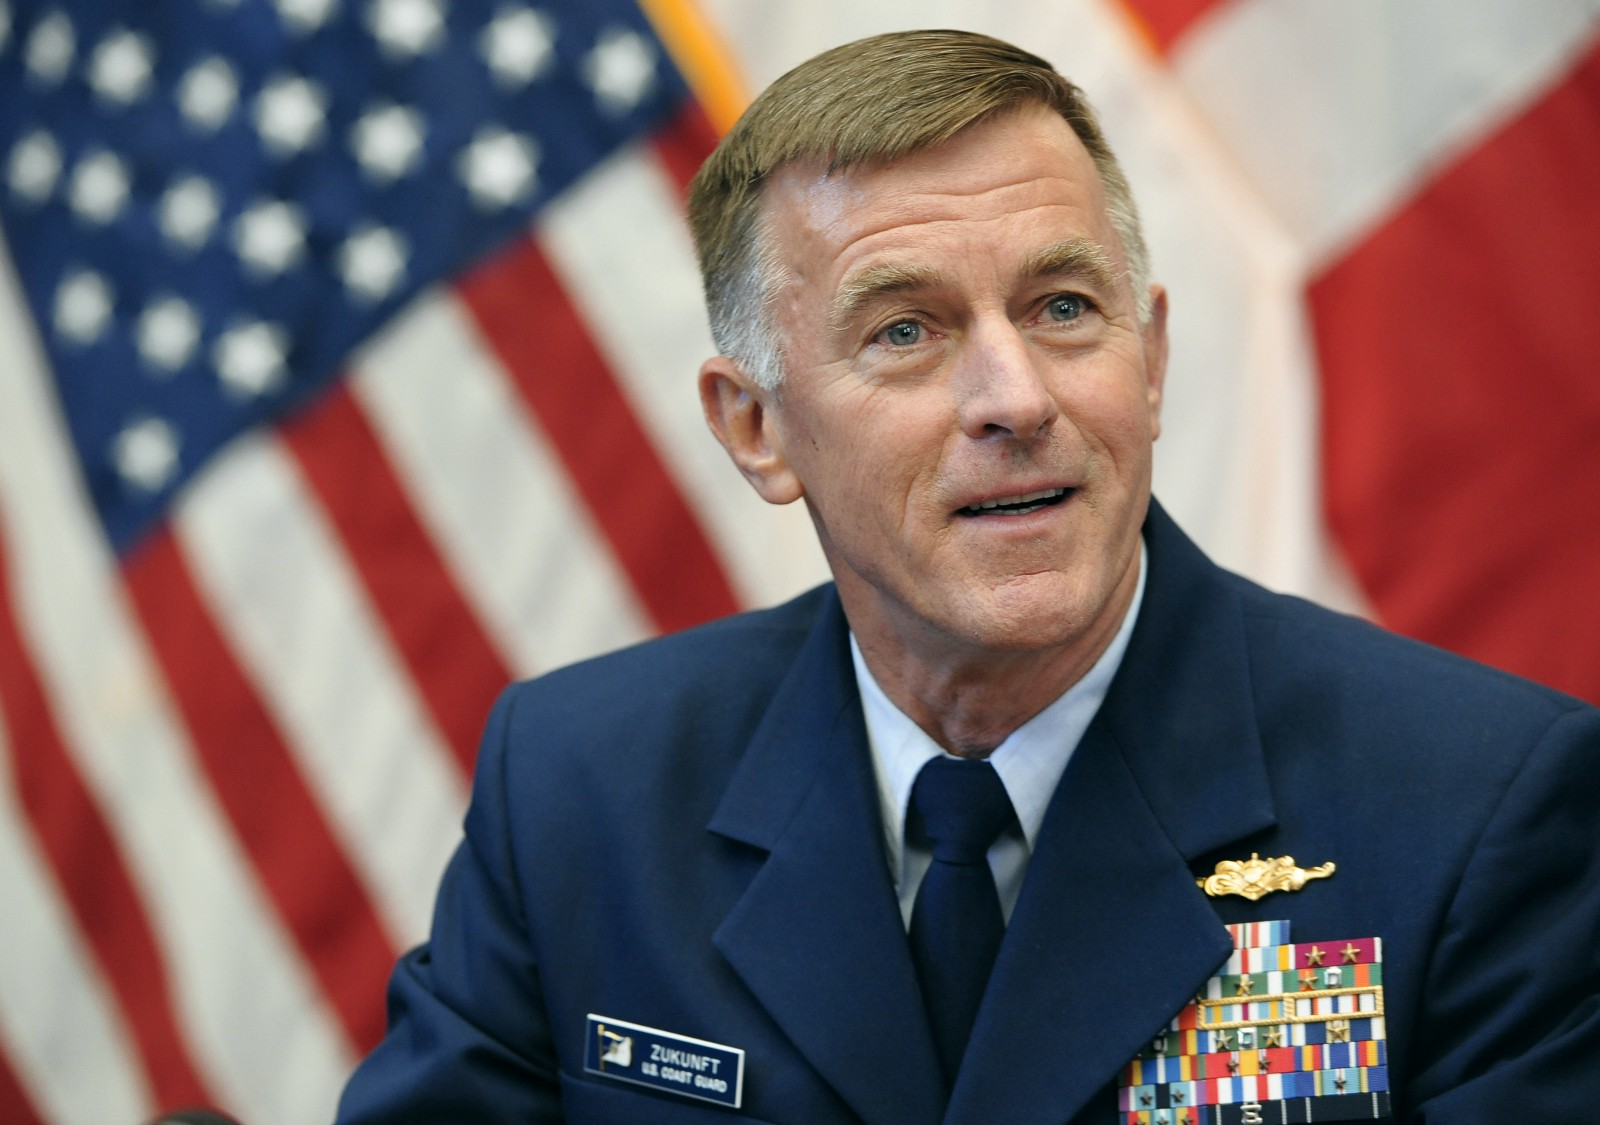 Retired Military Brass, Coast Guard Leader Oppose Trump's Trans Military Ban